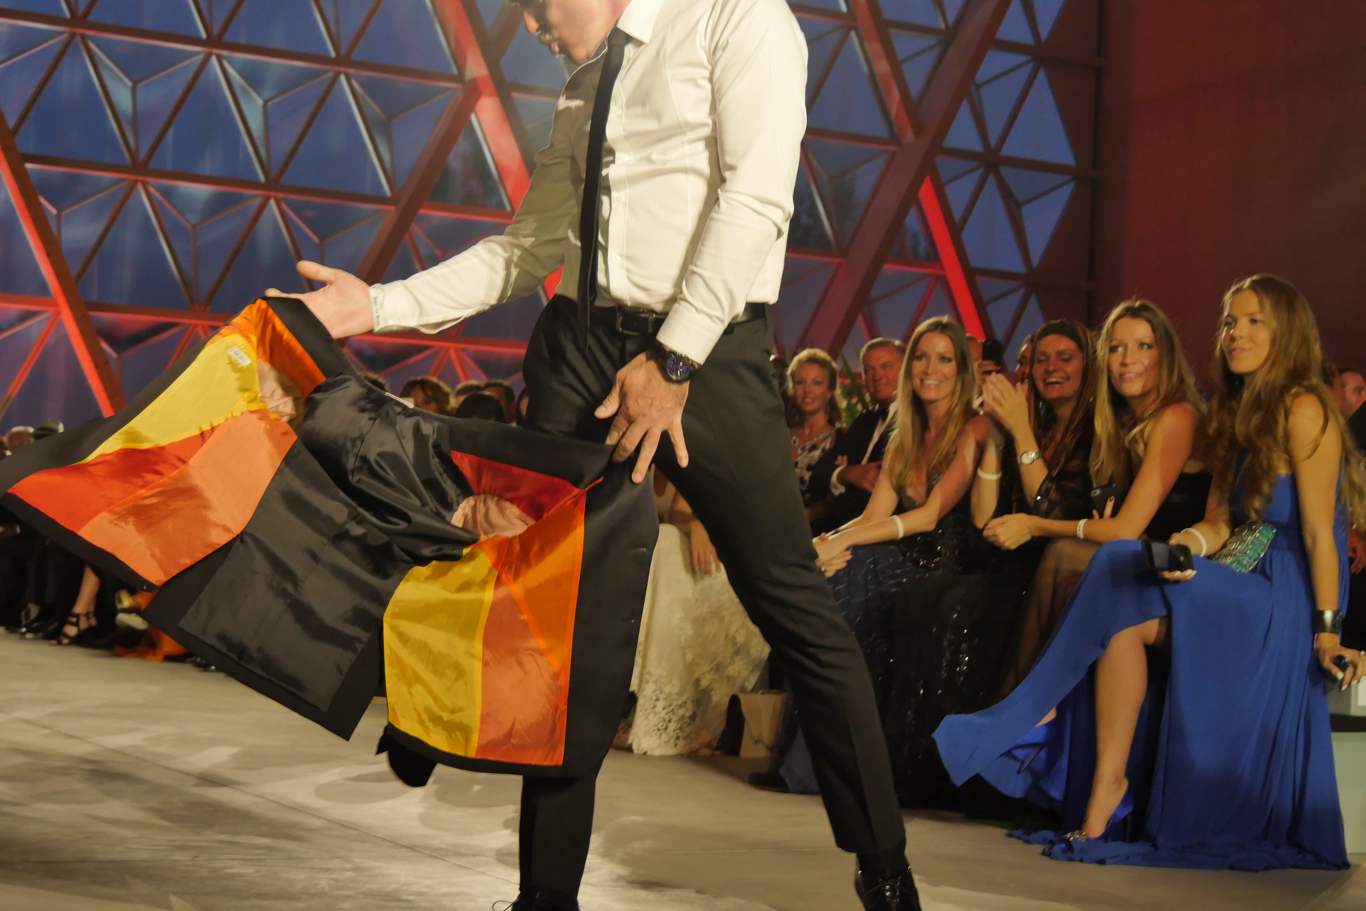 Antonio Banderas on the catwalk at the Fashion for Relief event in Cannes